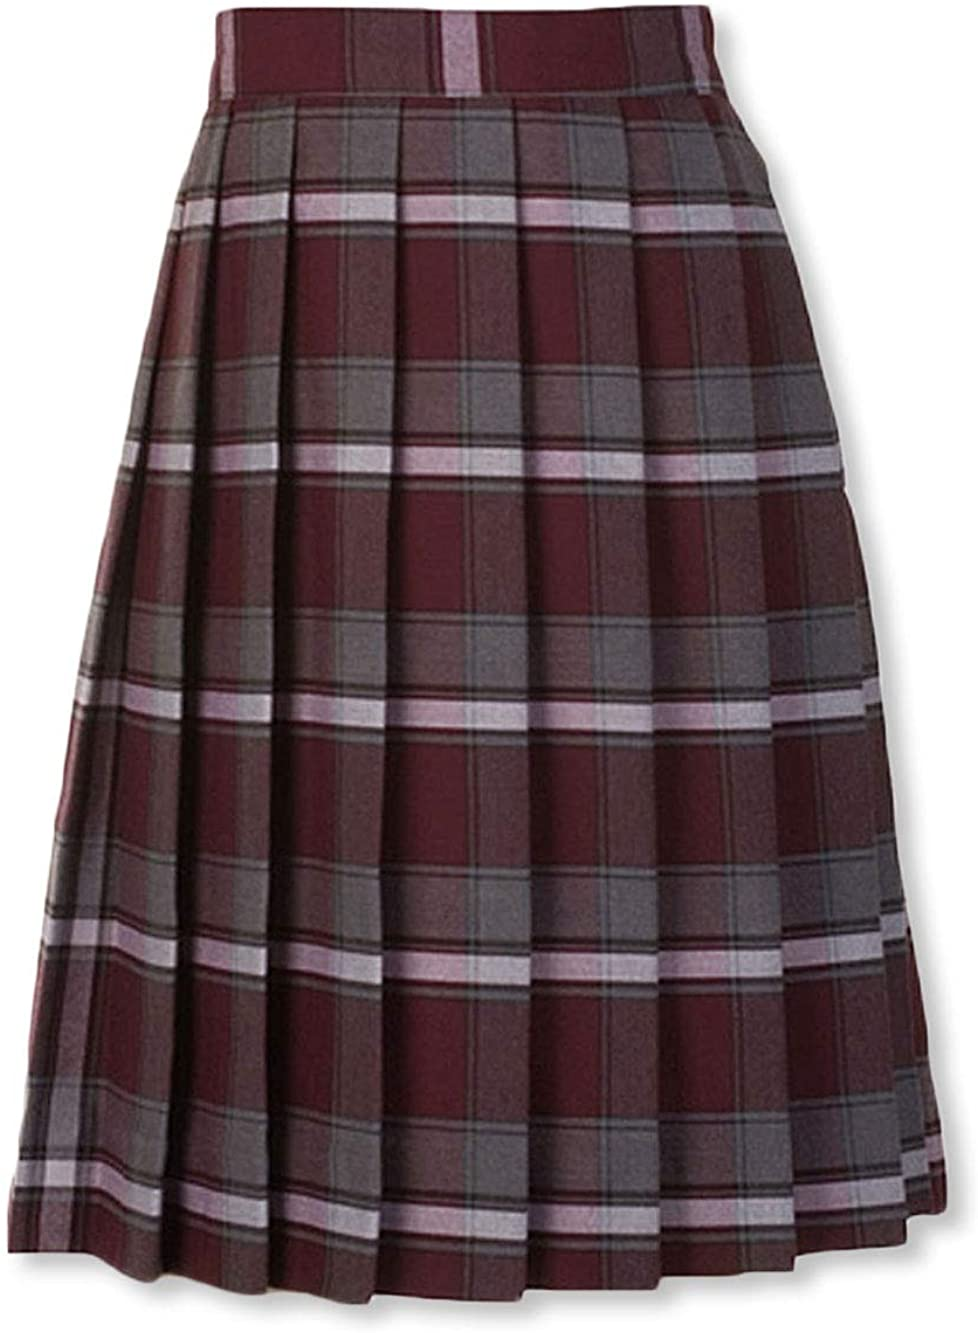 Cookie's Big Girls' Pleated Skirt - Burgundy/Gray/whiteplaid #91, 16